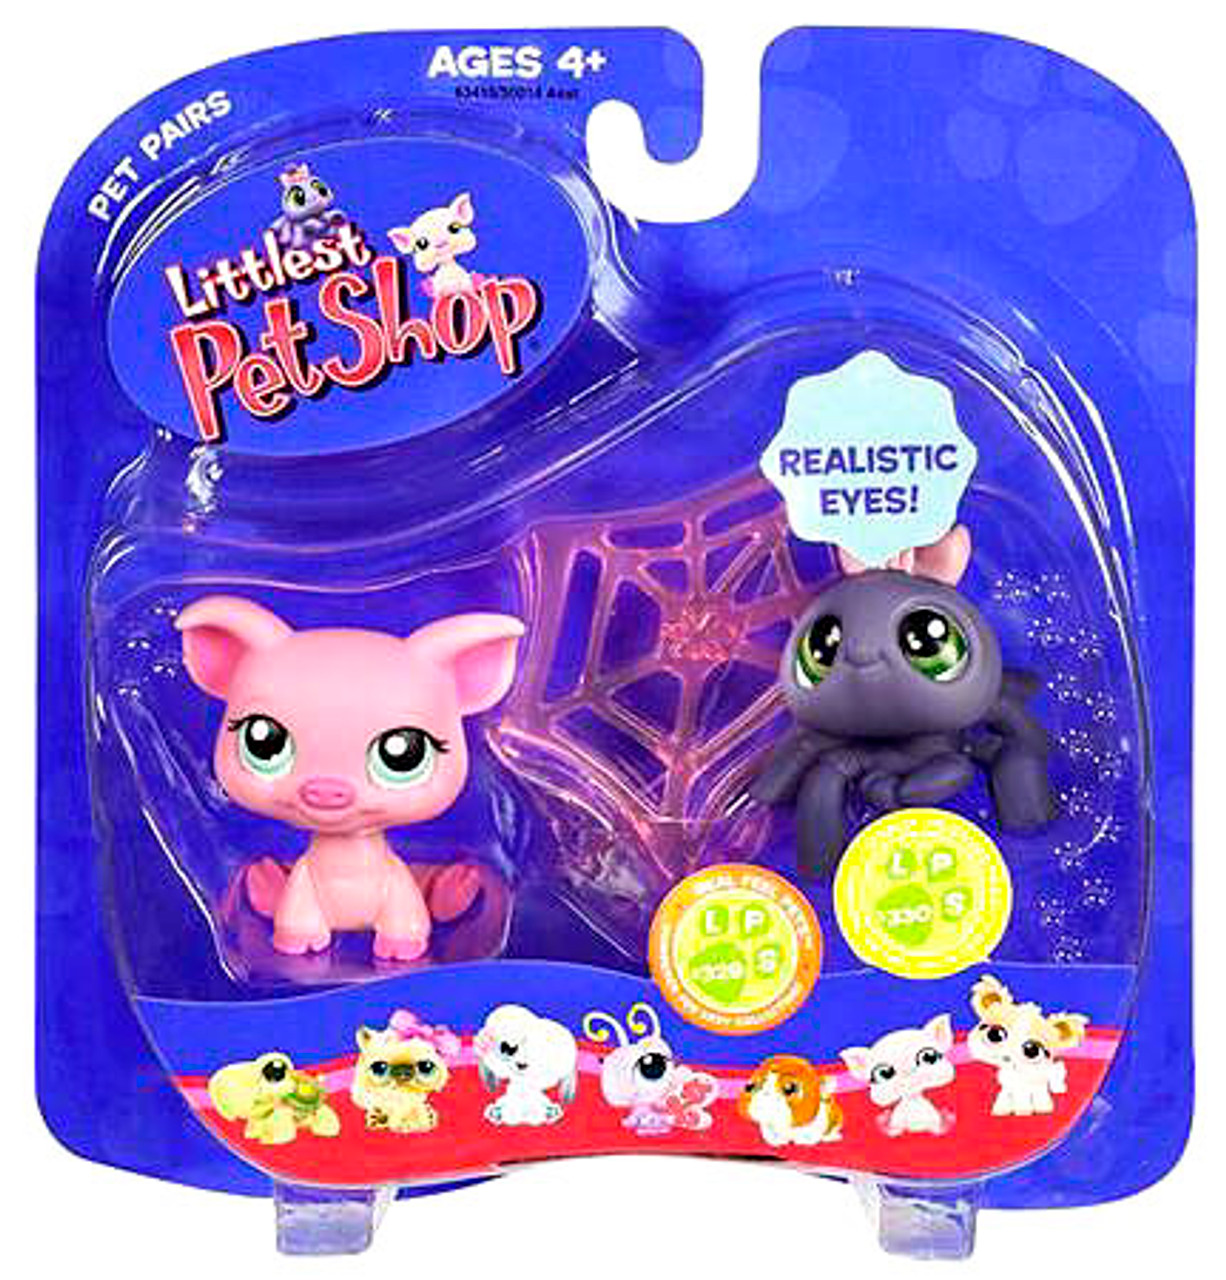 Littlest Pet Shop Pet Pairs Pig & Spider Figure 2-Pack